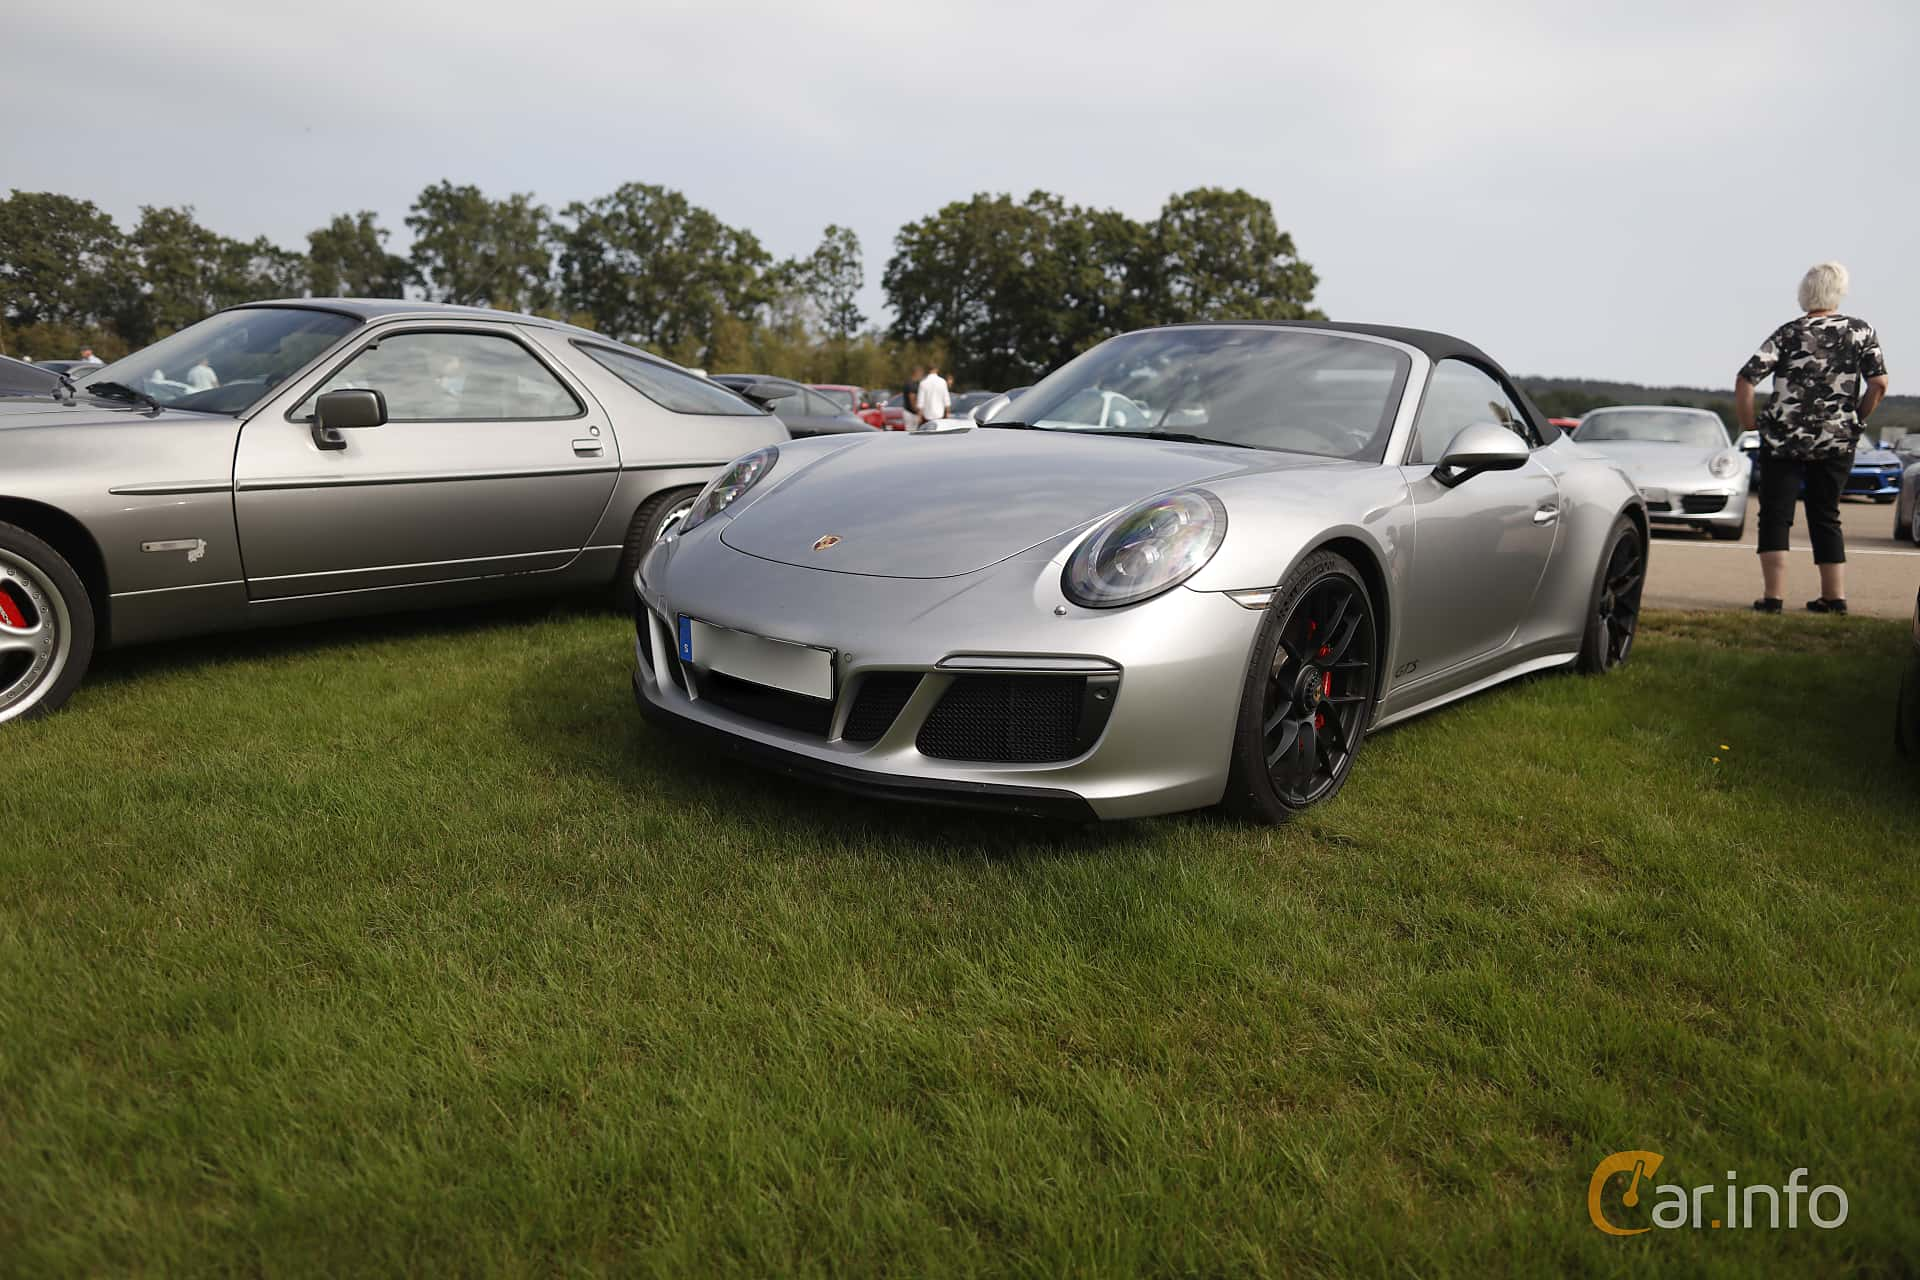 Front/Side  of Porsche 911 Carrera 4 GTS Cabriolet  PDK, 450ps, 2017 at Autoropa Racing day Knutstorp 2019